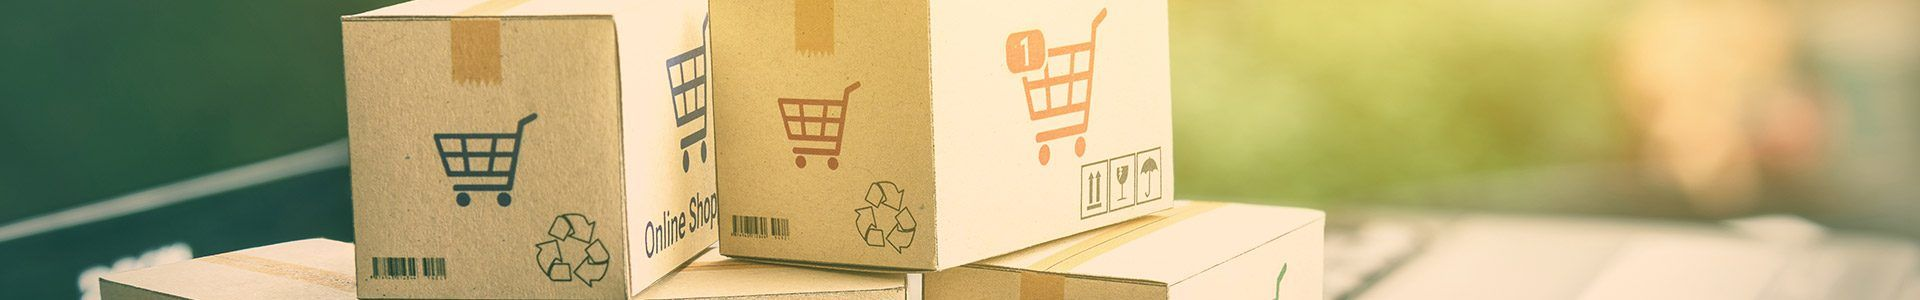 kom naar shoppiong today de e-commerce update van 2015